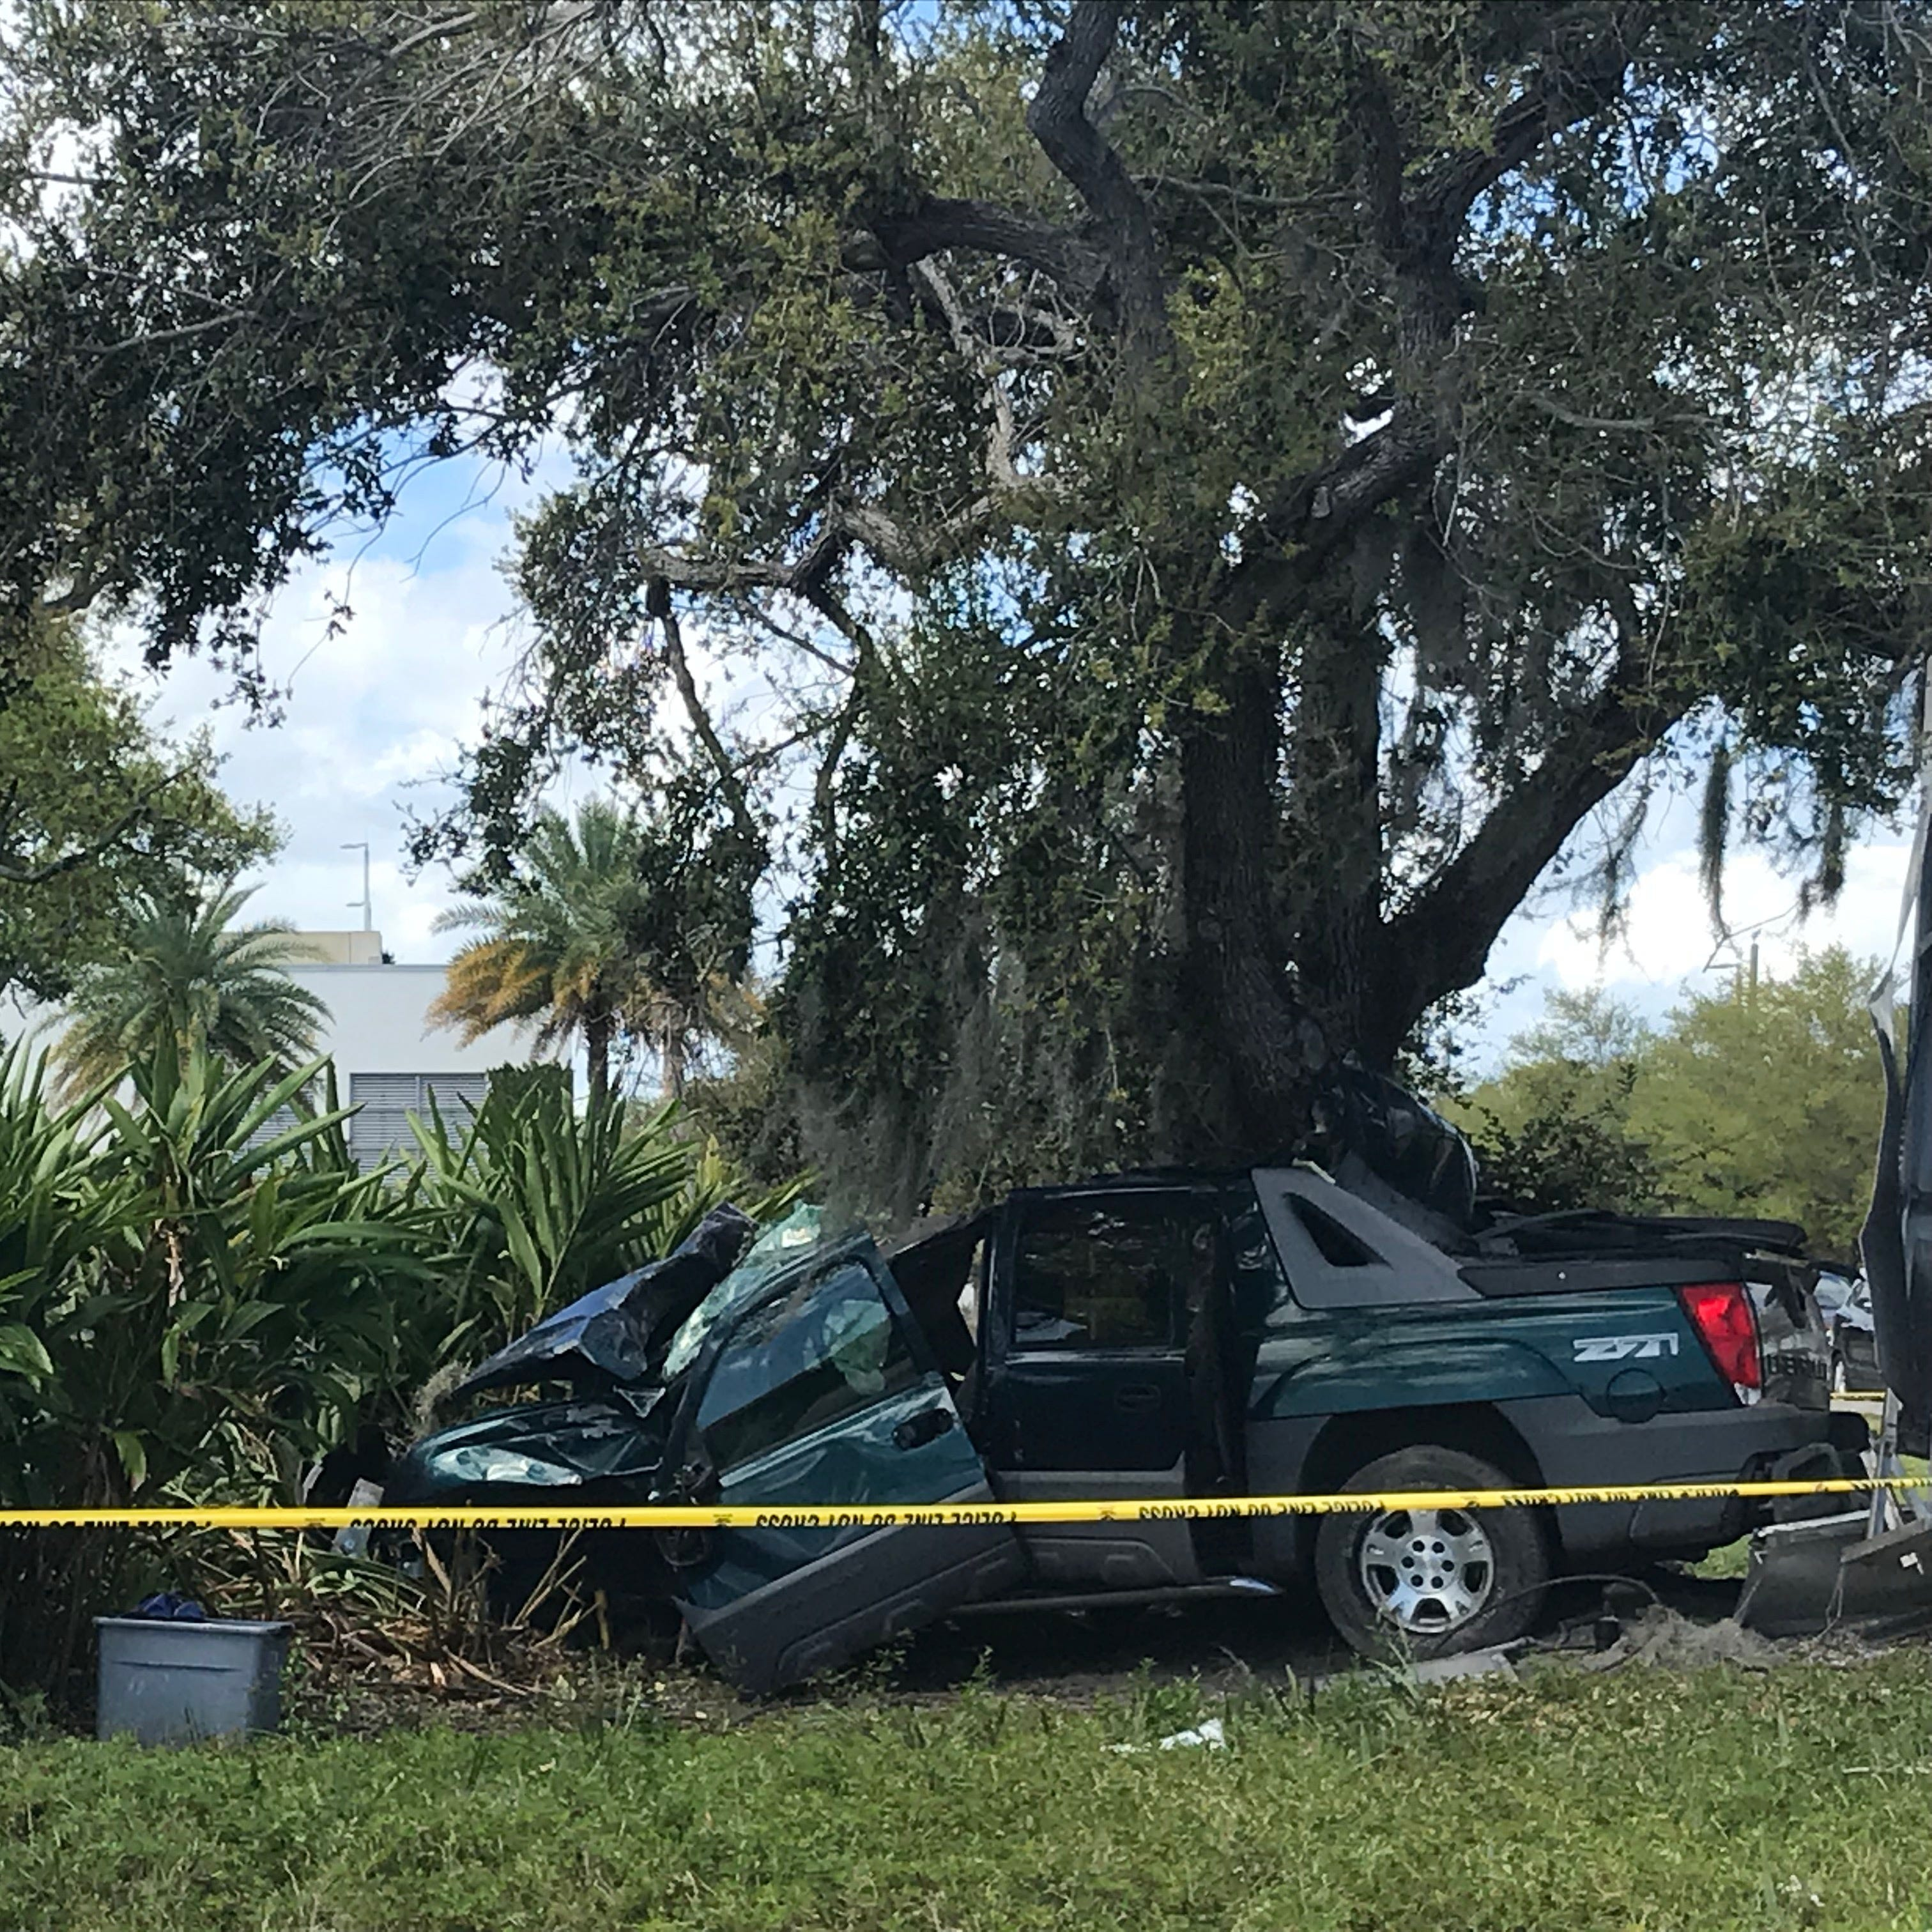 Man killed in single-vehicle crash on Indian River Boulevard, Vero Beach police say